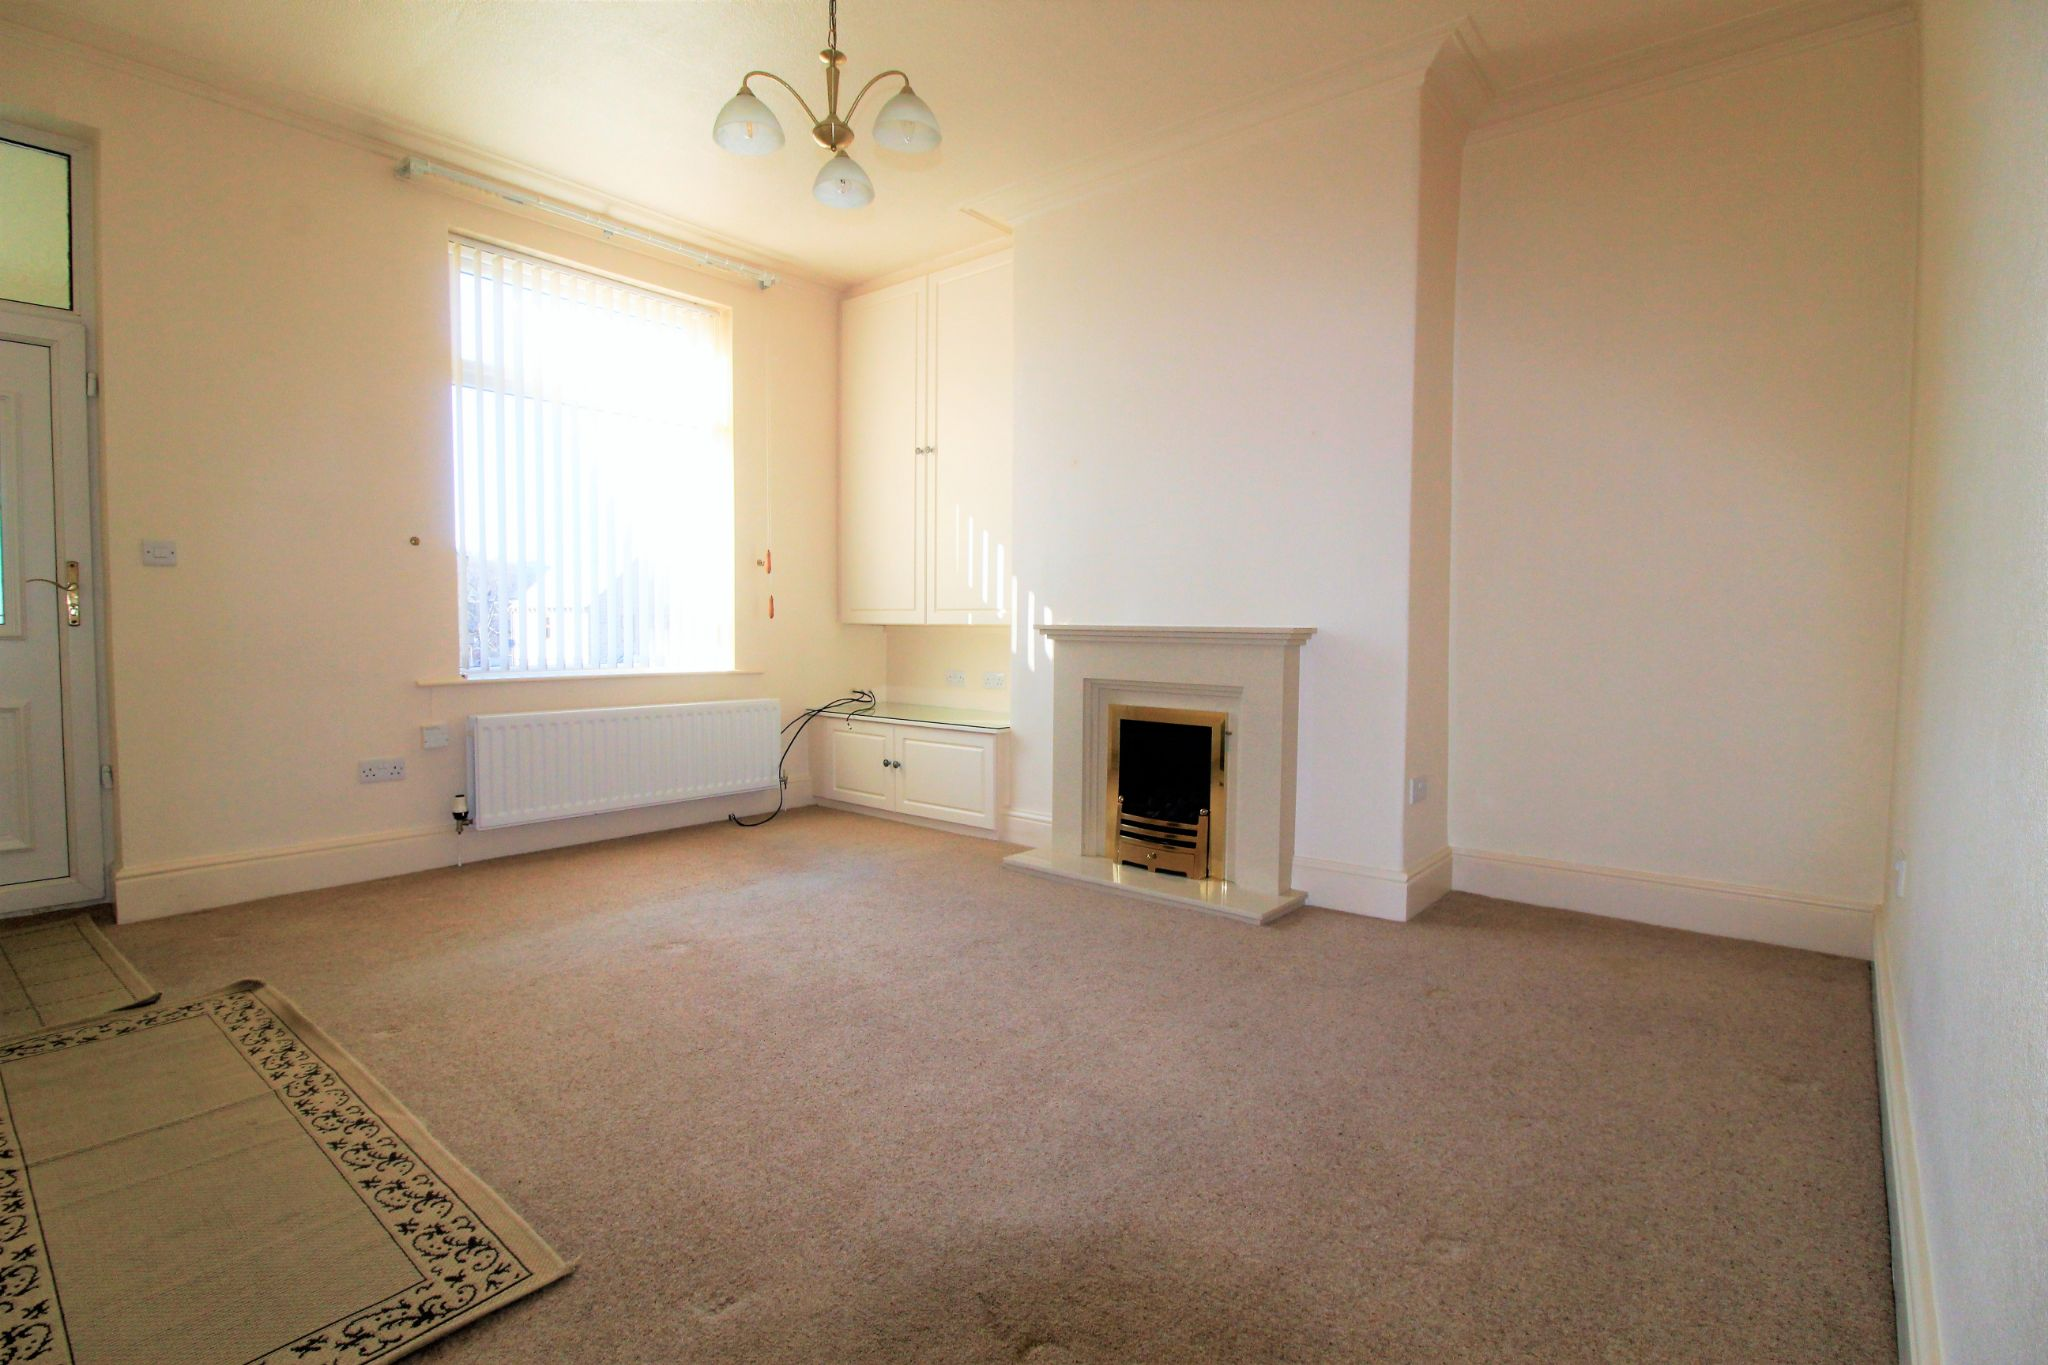 2 bedroom mid terraced house SSTC in Brighouse - Photograph 14